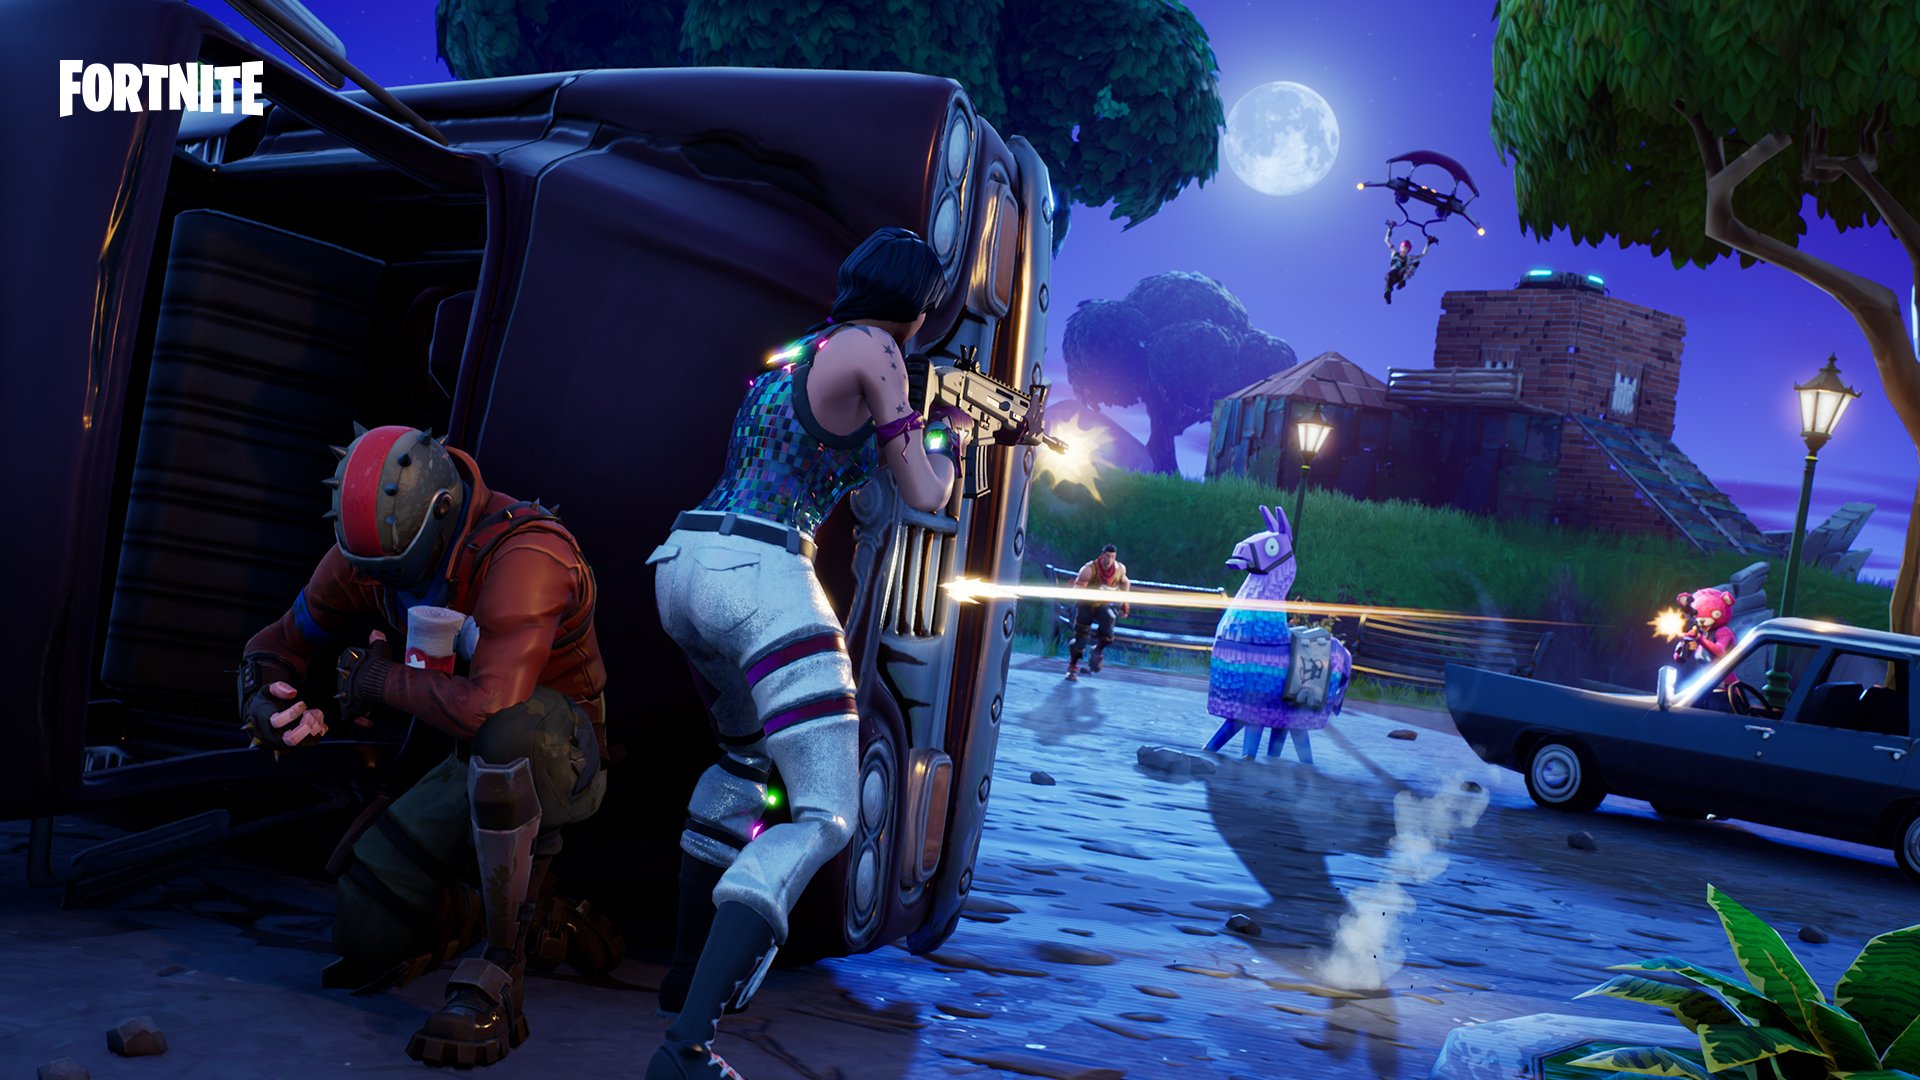 Fortnite Brings Back Limited Time Modes Team Rumble And Unvaulted Duos